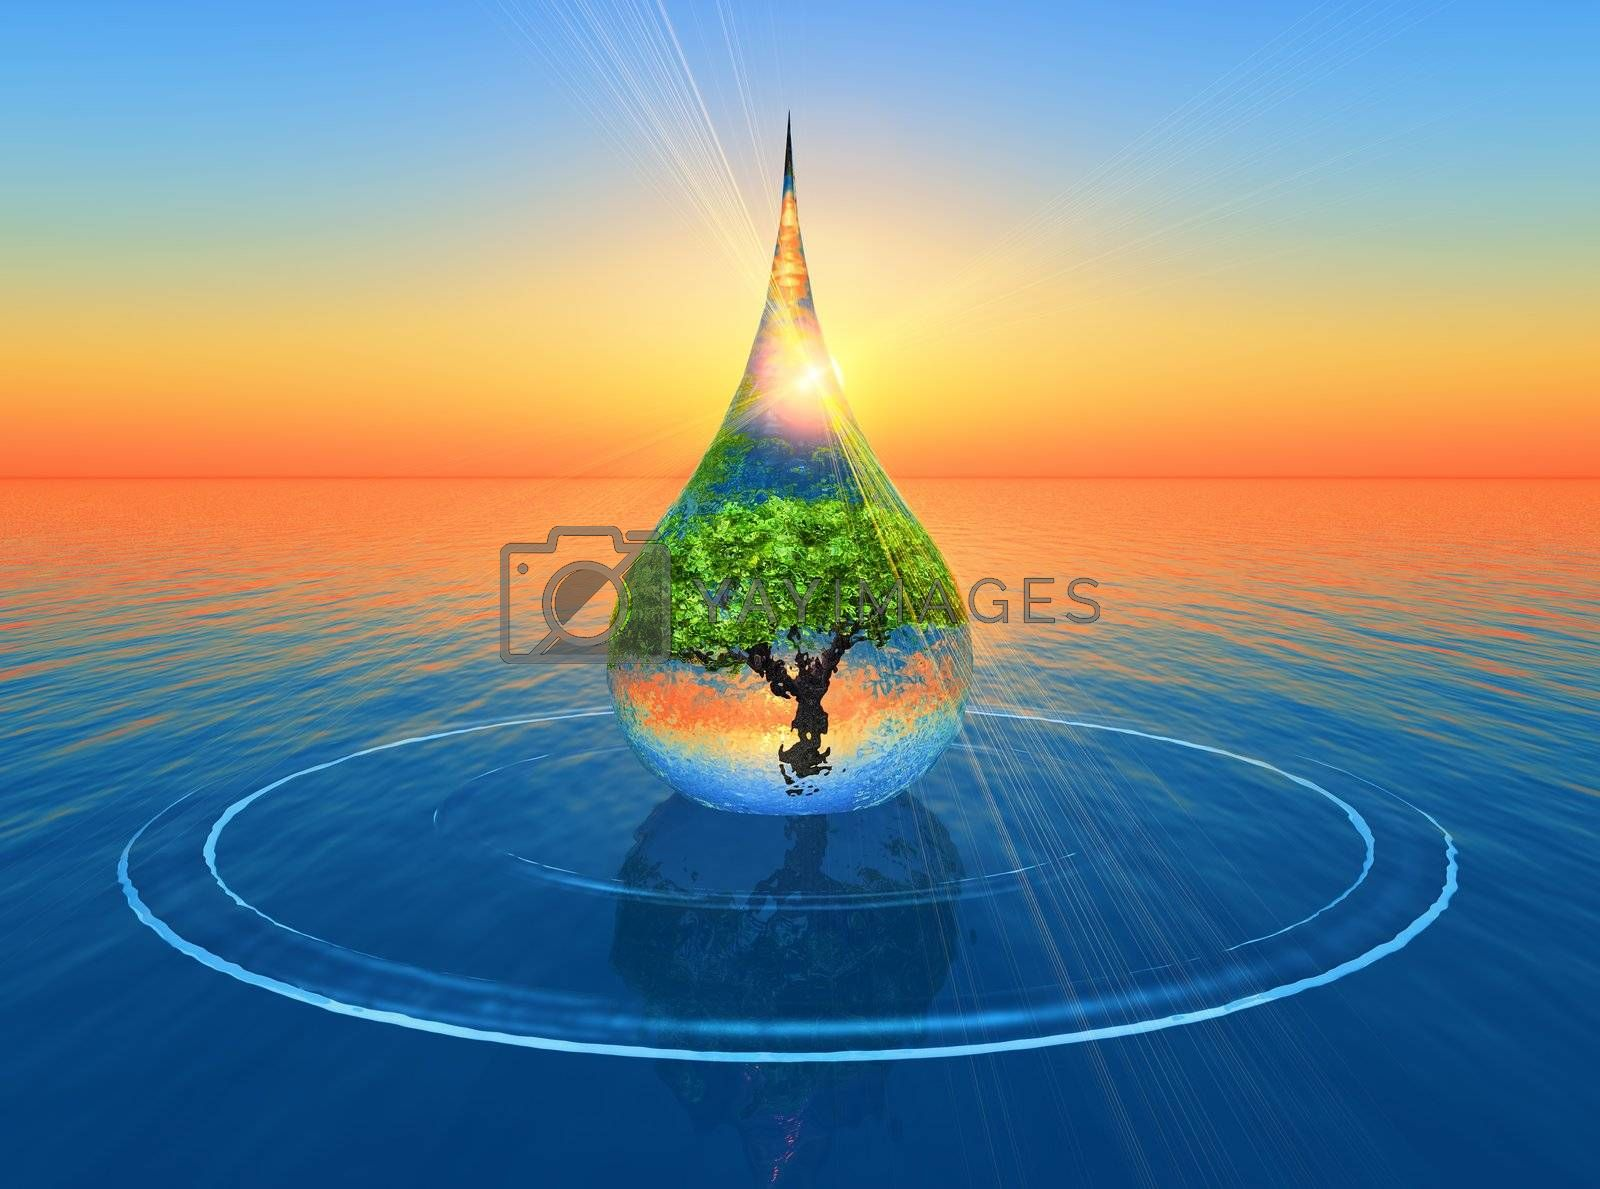 drop with a tree inside